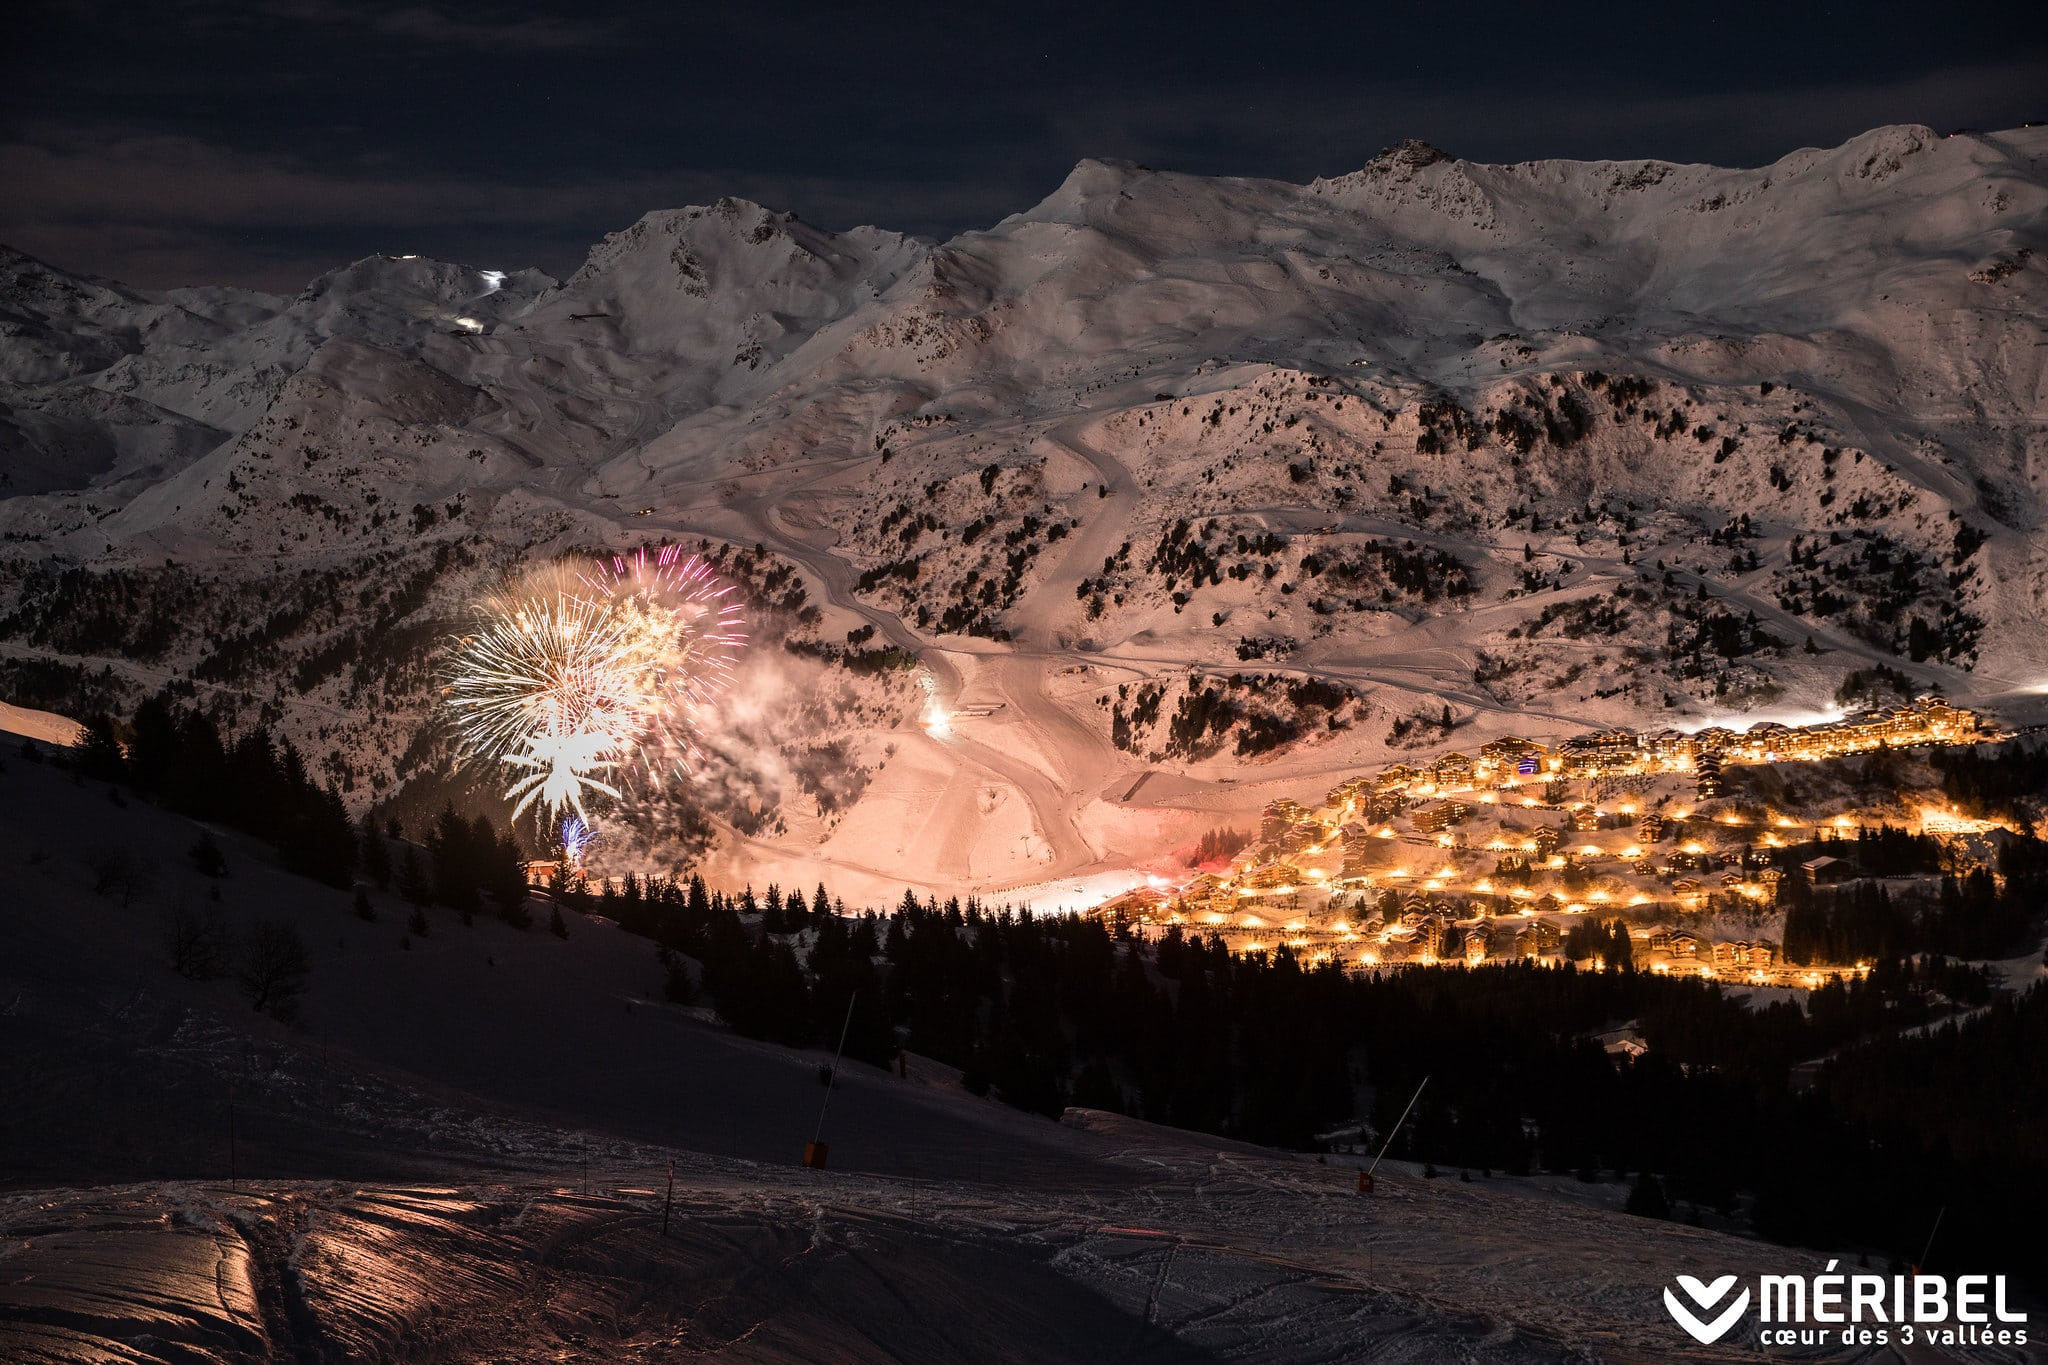 Watch The Fireworks In Meribel From Your Luxury Ski Chalet